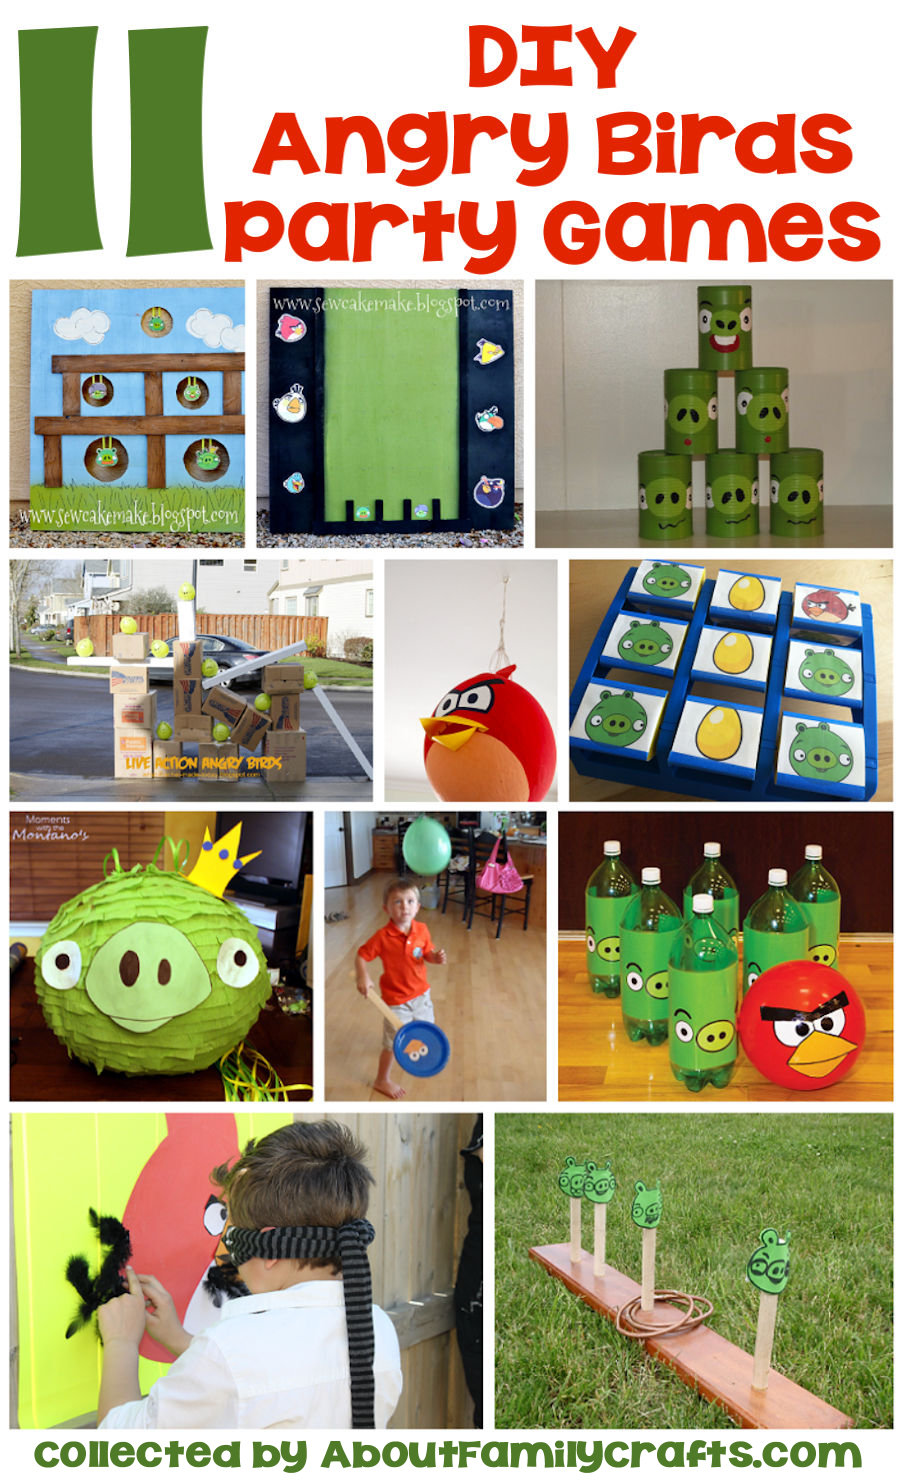 Best 65 Diy Angry Birds Party Ideas – About Family Crafts This Month